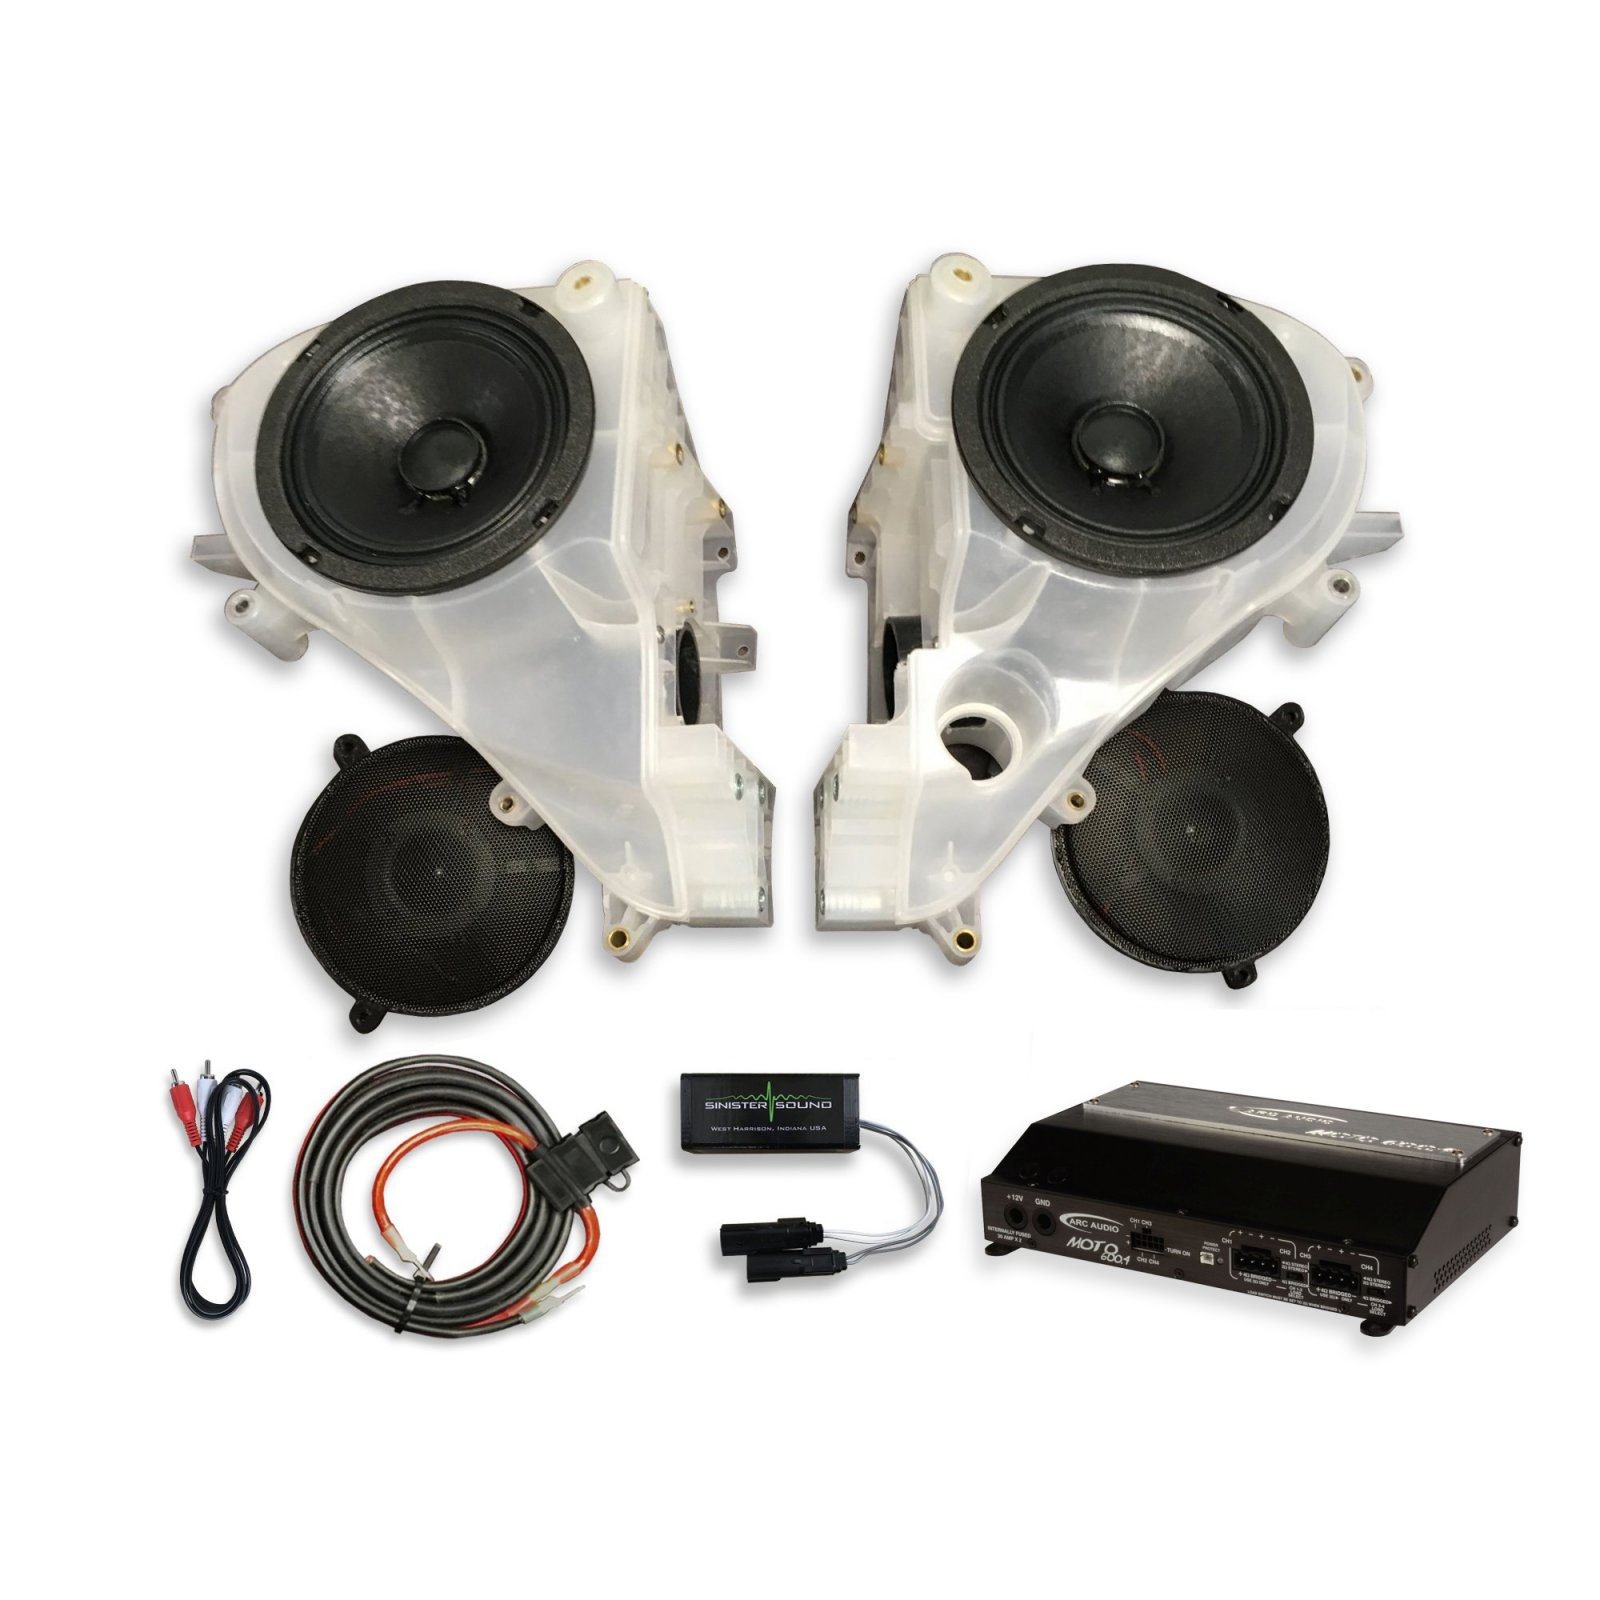 14-18 Street Glide SinisterSound Fairing System w/Arc Audio Moto720 and Line Level